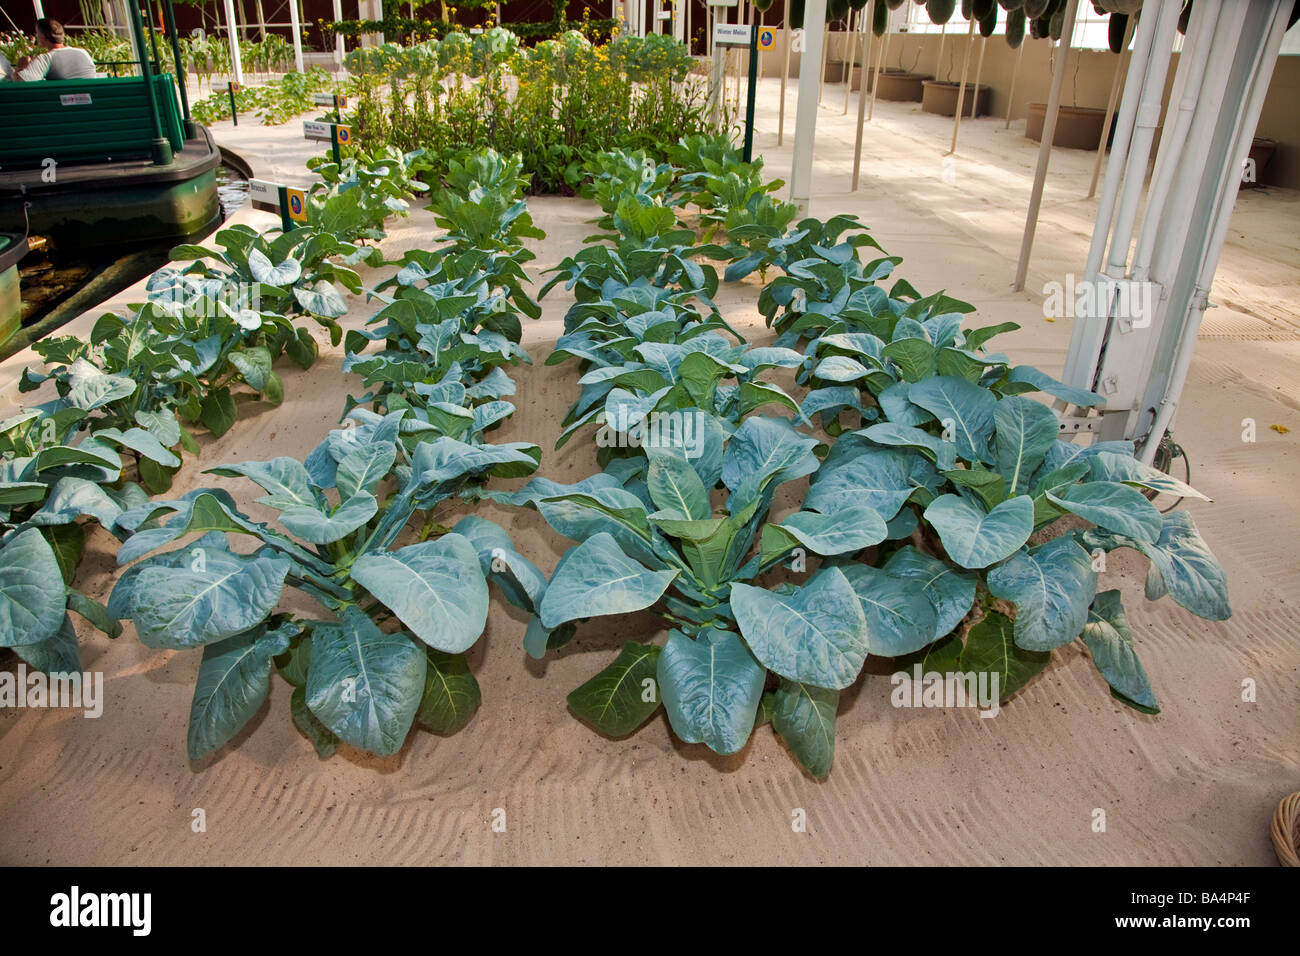 Vegetable growing in Sand in a Hydroponic Greenhouse in Florida,USA Stock Photo